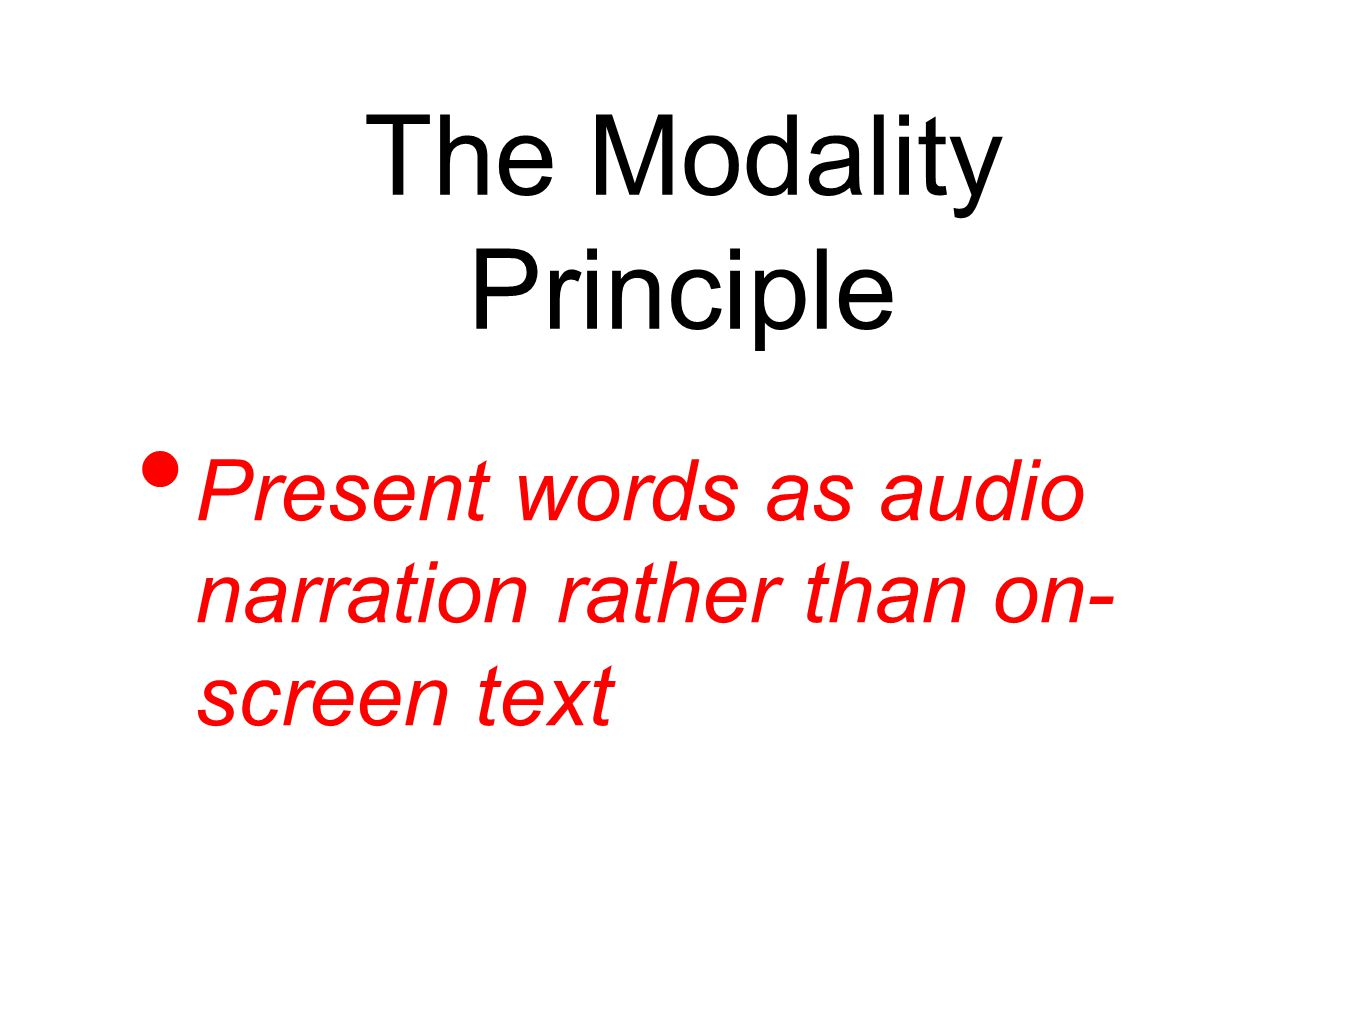 Example 4 demonstrates when the Modality and Redundancy principles do not apply.